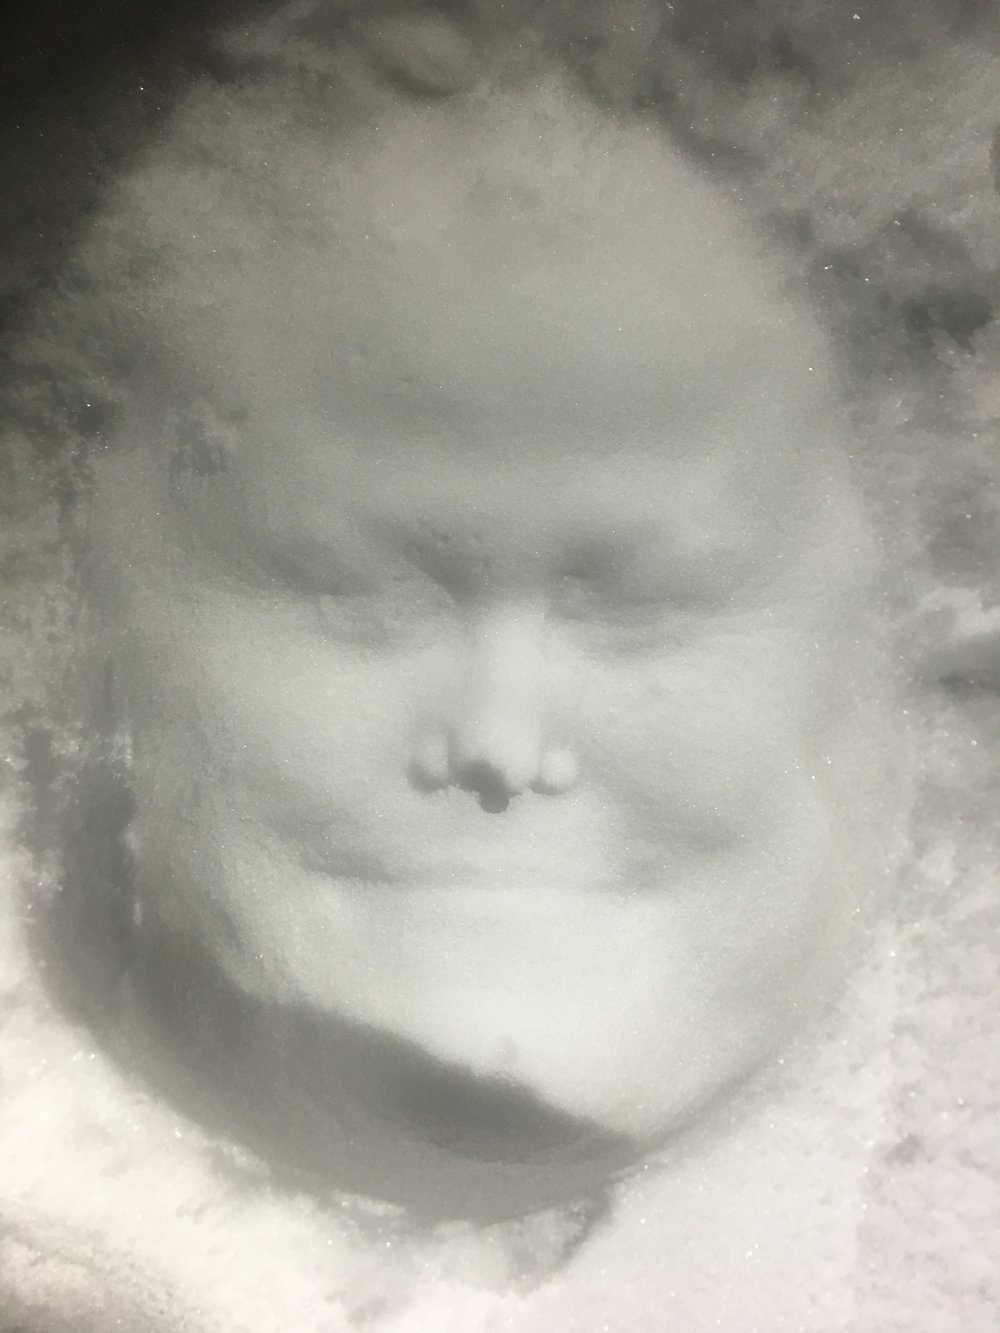 At a Christmas party, I pressed my face in the snow and used a light to make this 3D looking imprint of my face. All the cool kids were doing it!